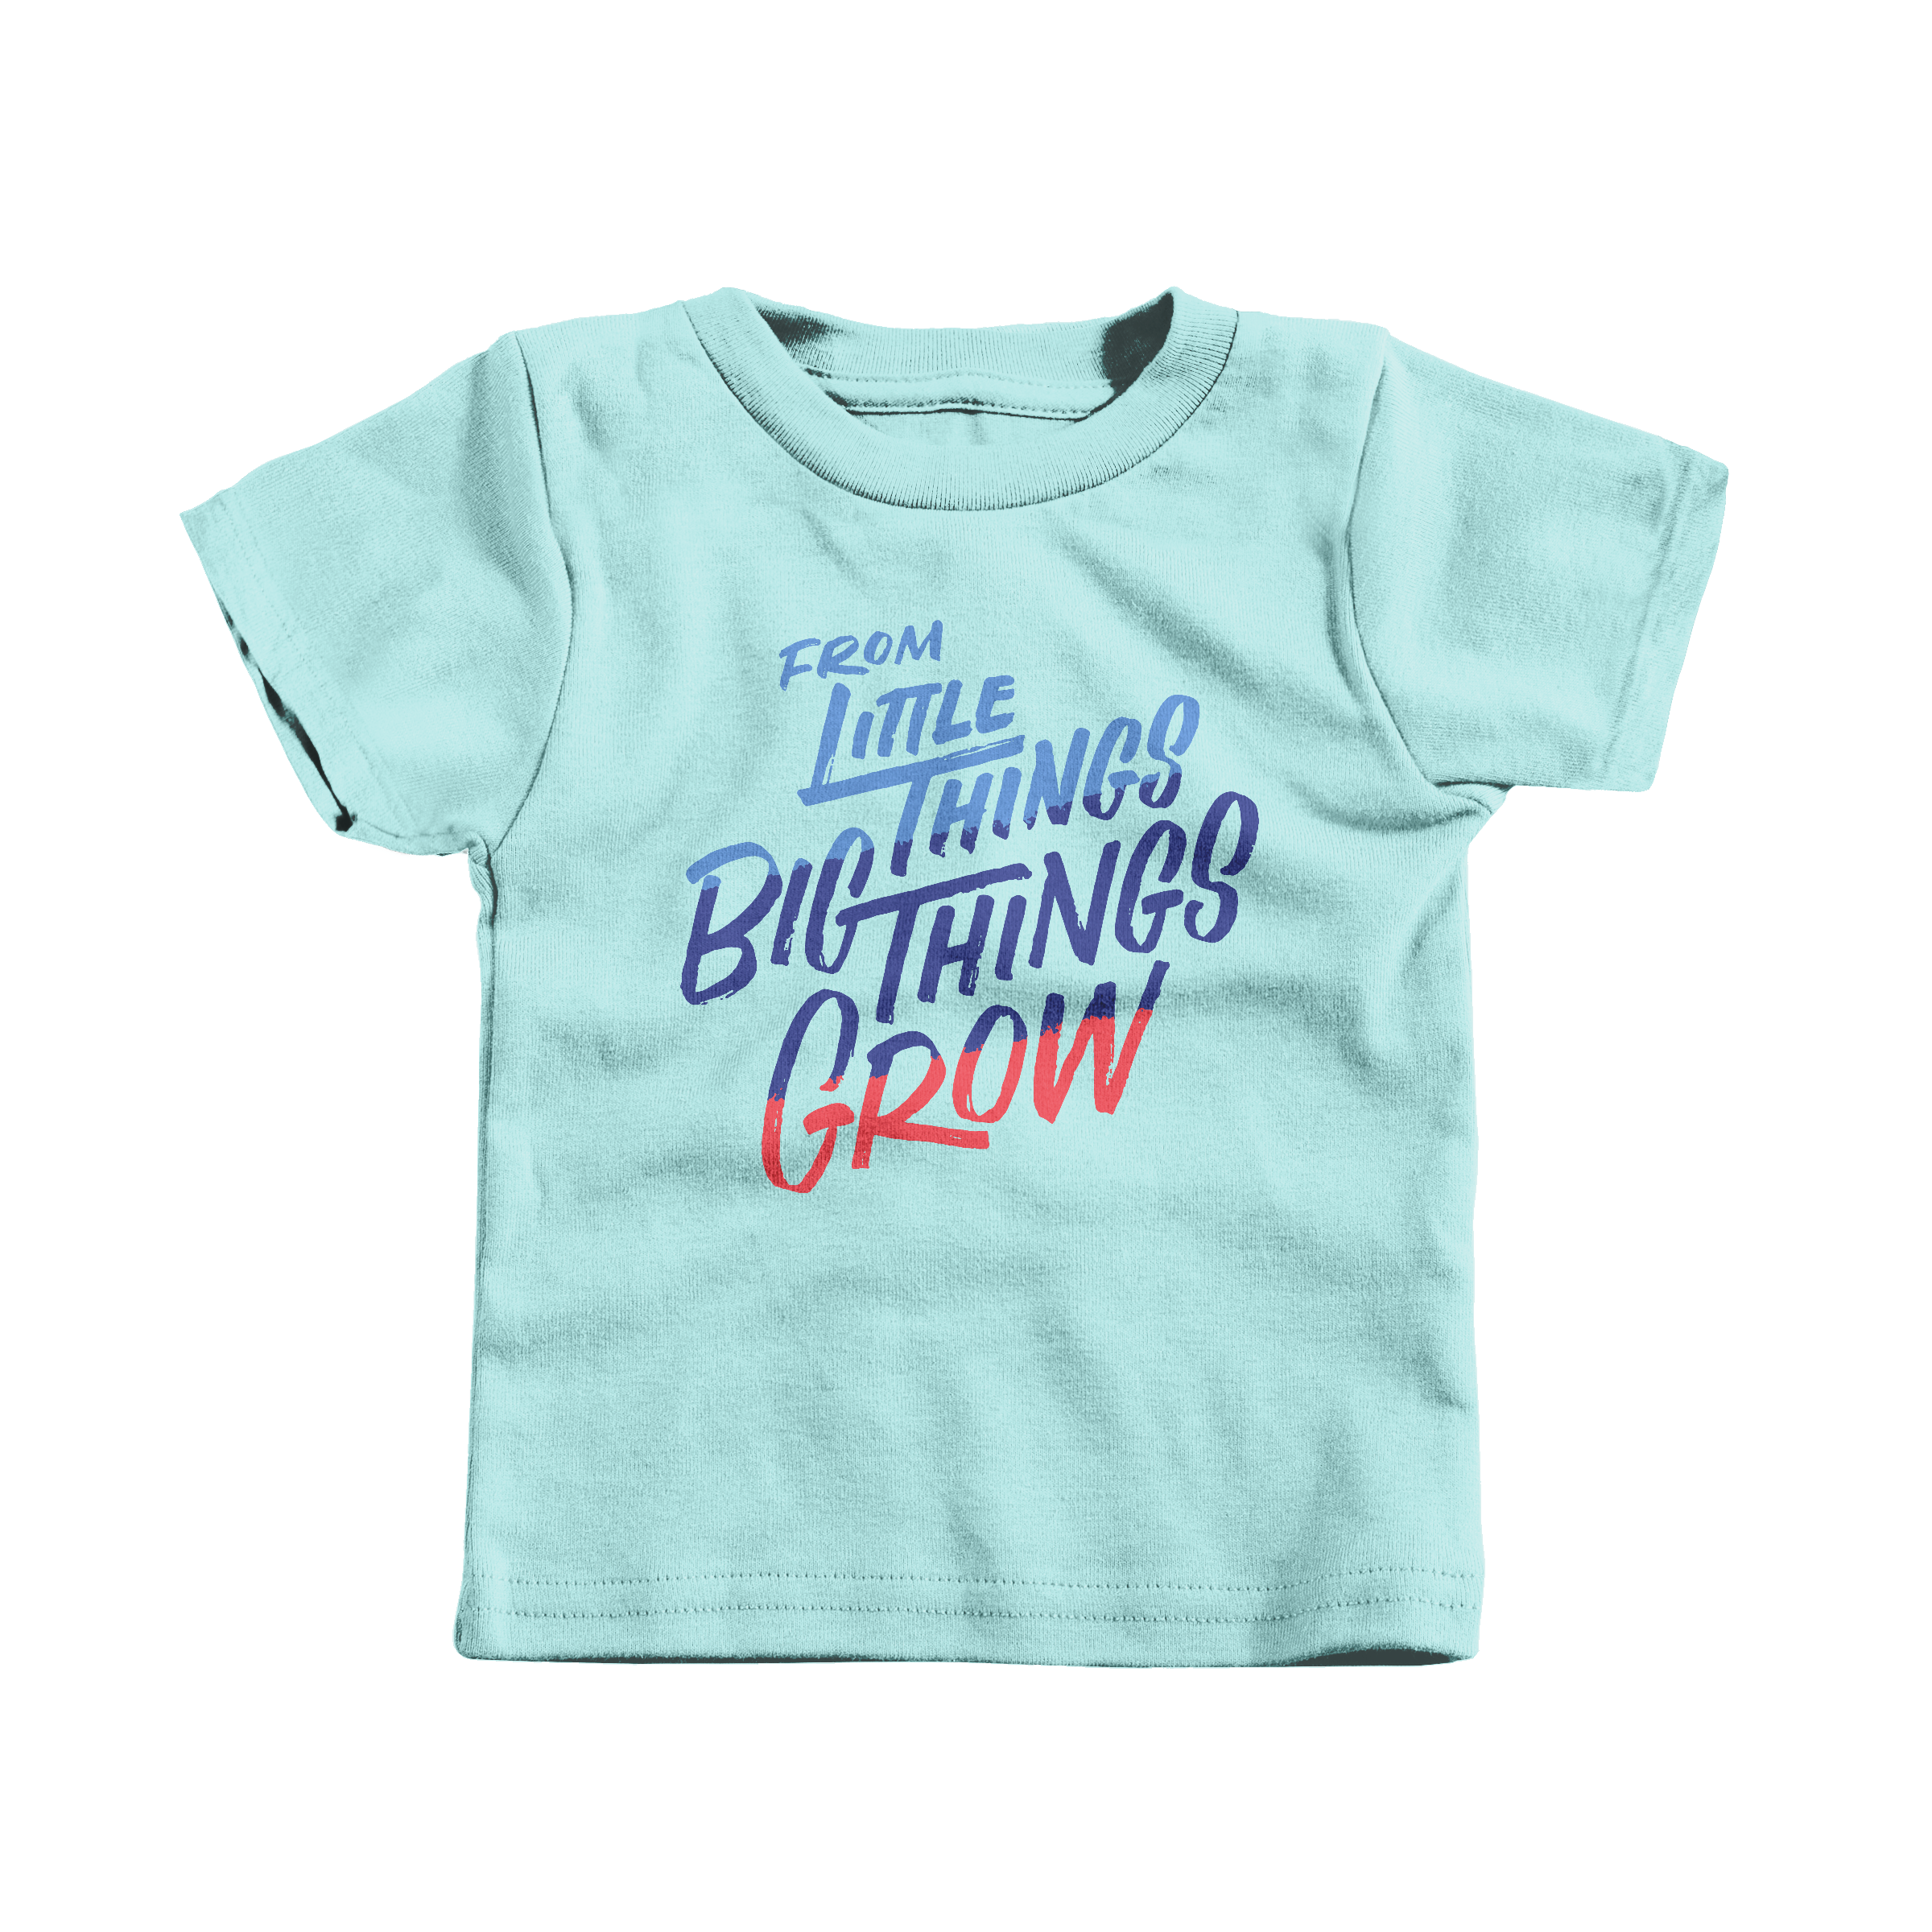 From Little Things Big Things Grow Chill (T-Shirt)